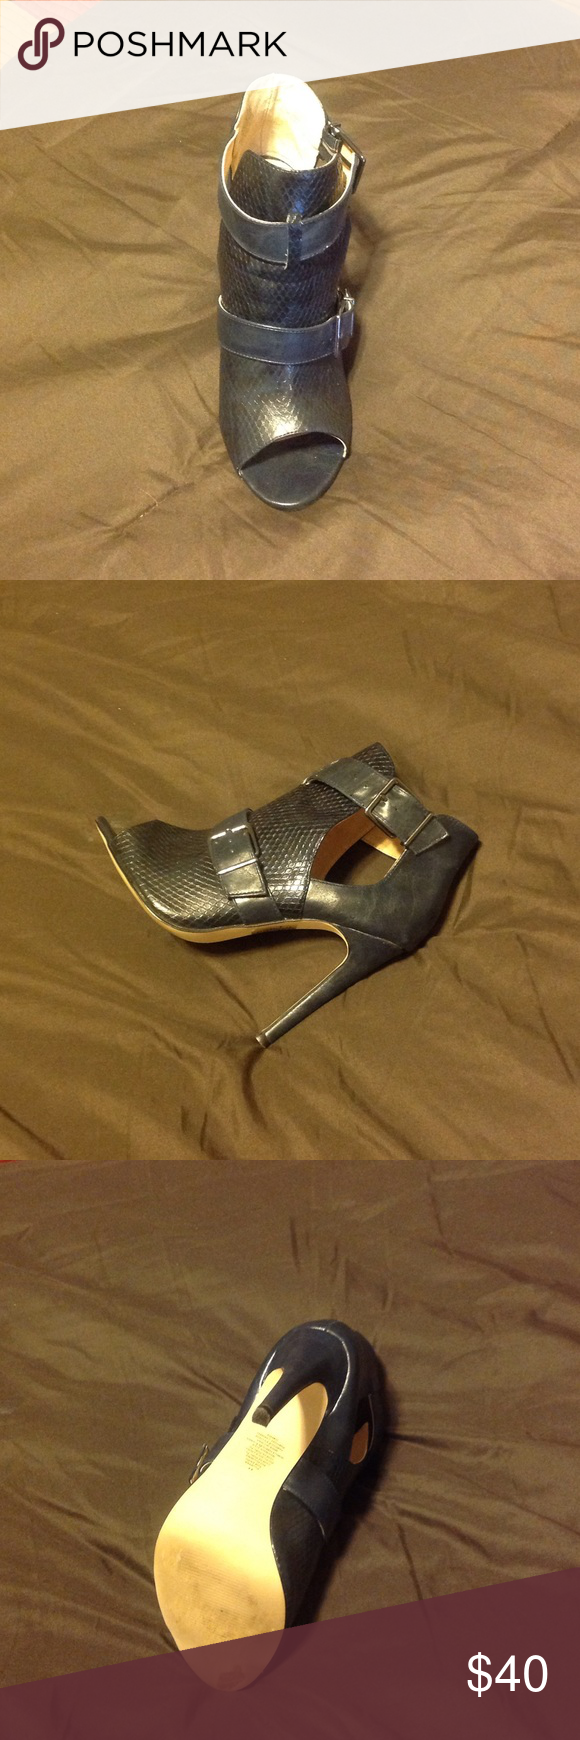 Express Shoe Navy, worn once! Express Shoes Heels